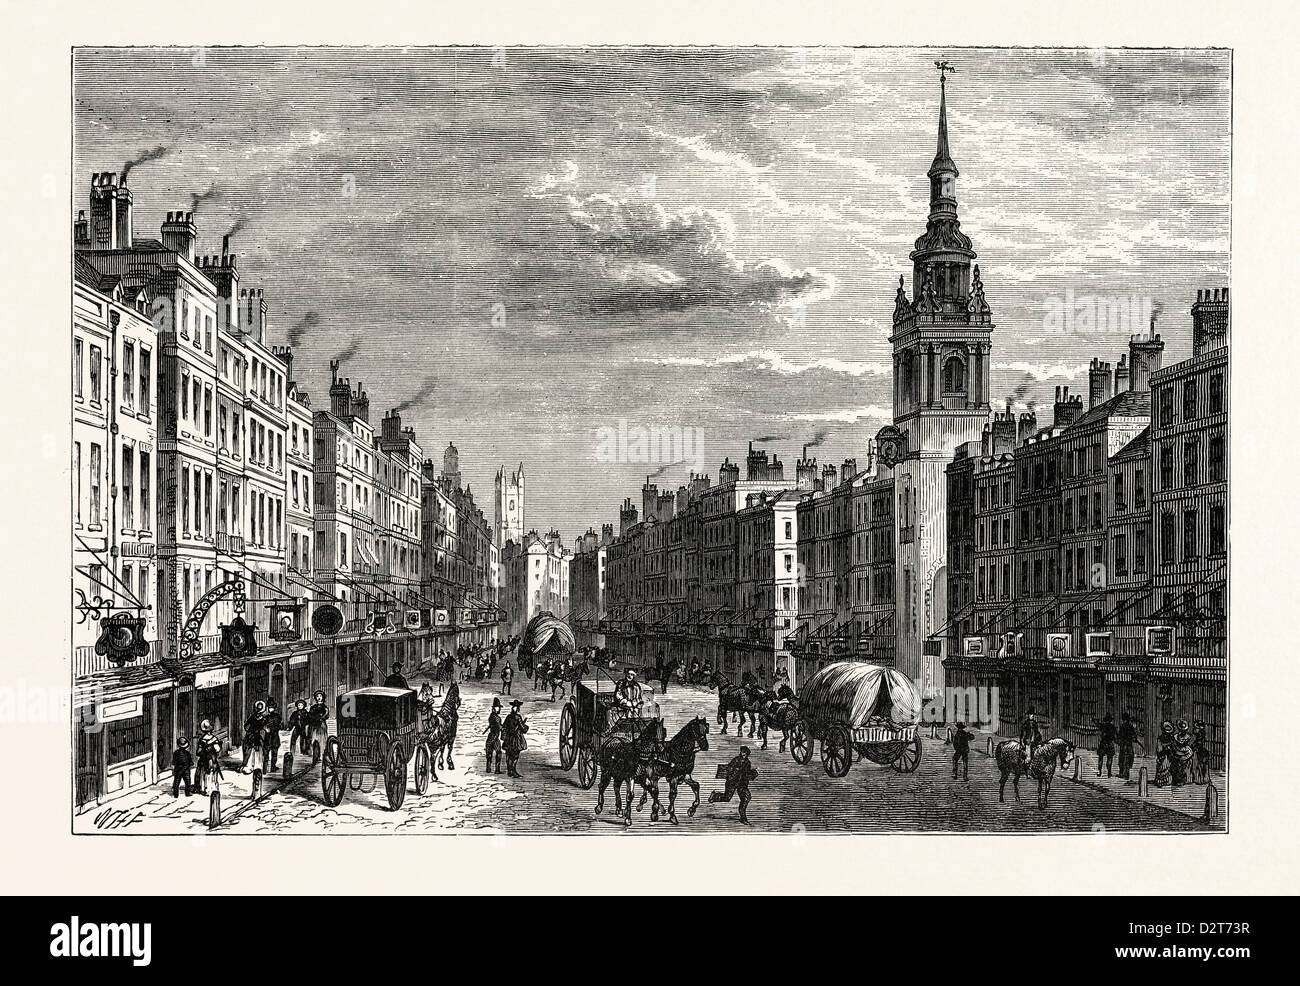 BOW CHURCH AND CHEAPSIDE IN 1750 LONDON - Stock Image